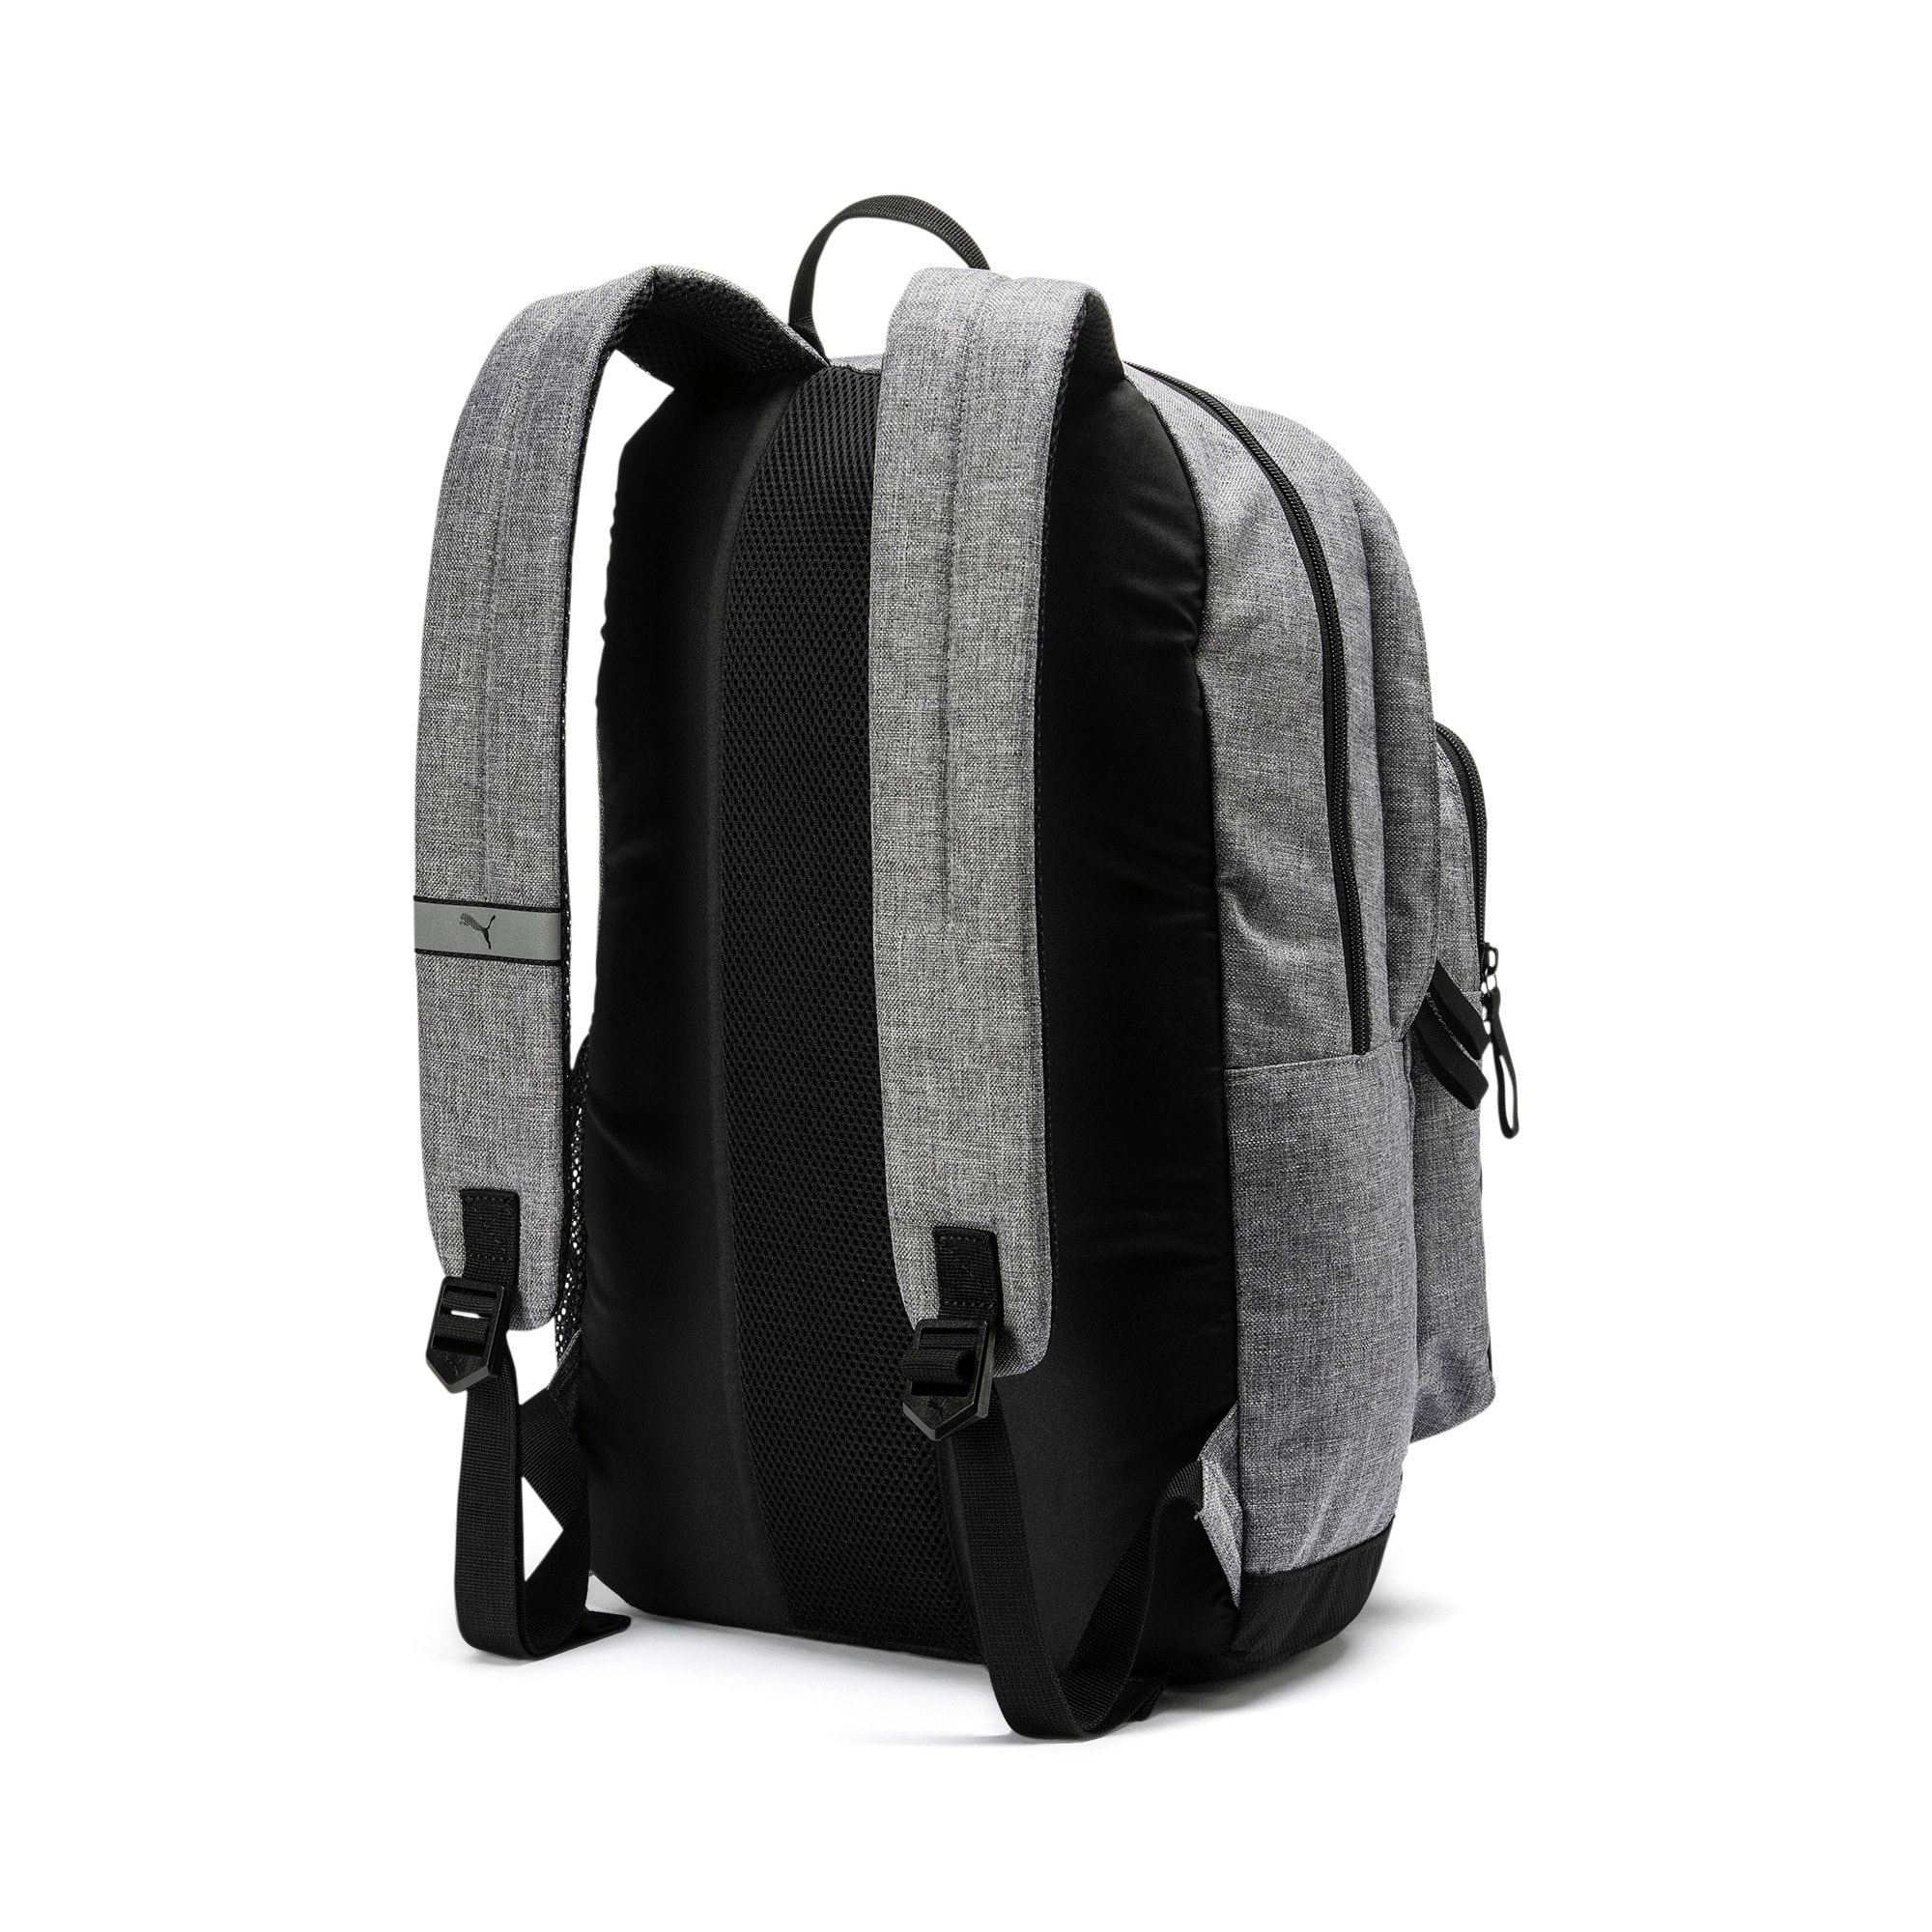 Thumbnail 3 of Deck Backpack II, Medium Gray Heather, medium